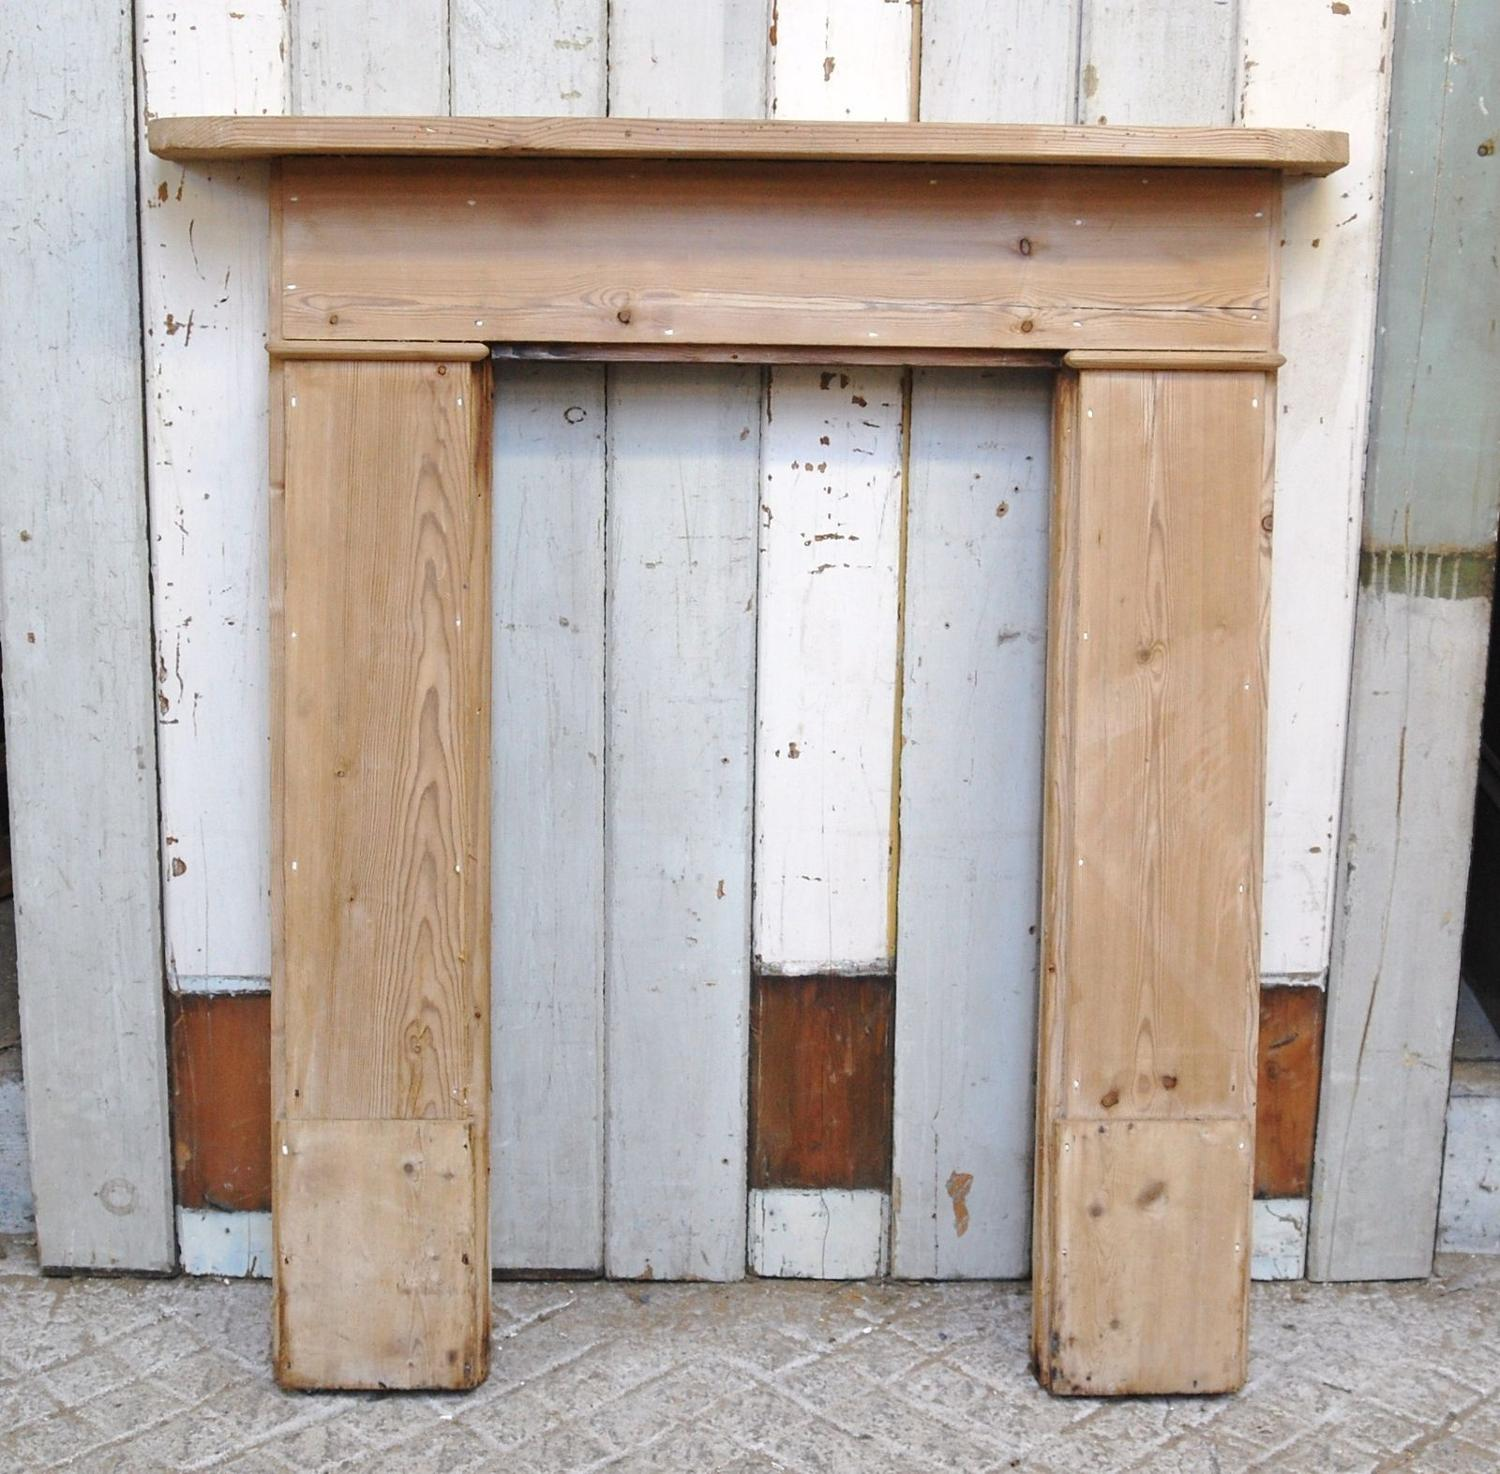 FS0052 A RECLAIMED RUSTIC STRIPPED PINE FIRE SURROUND